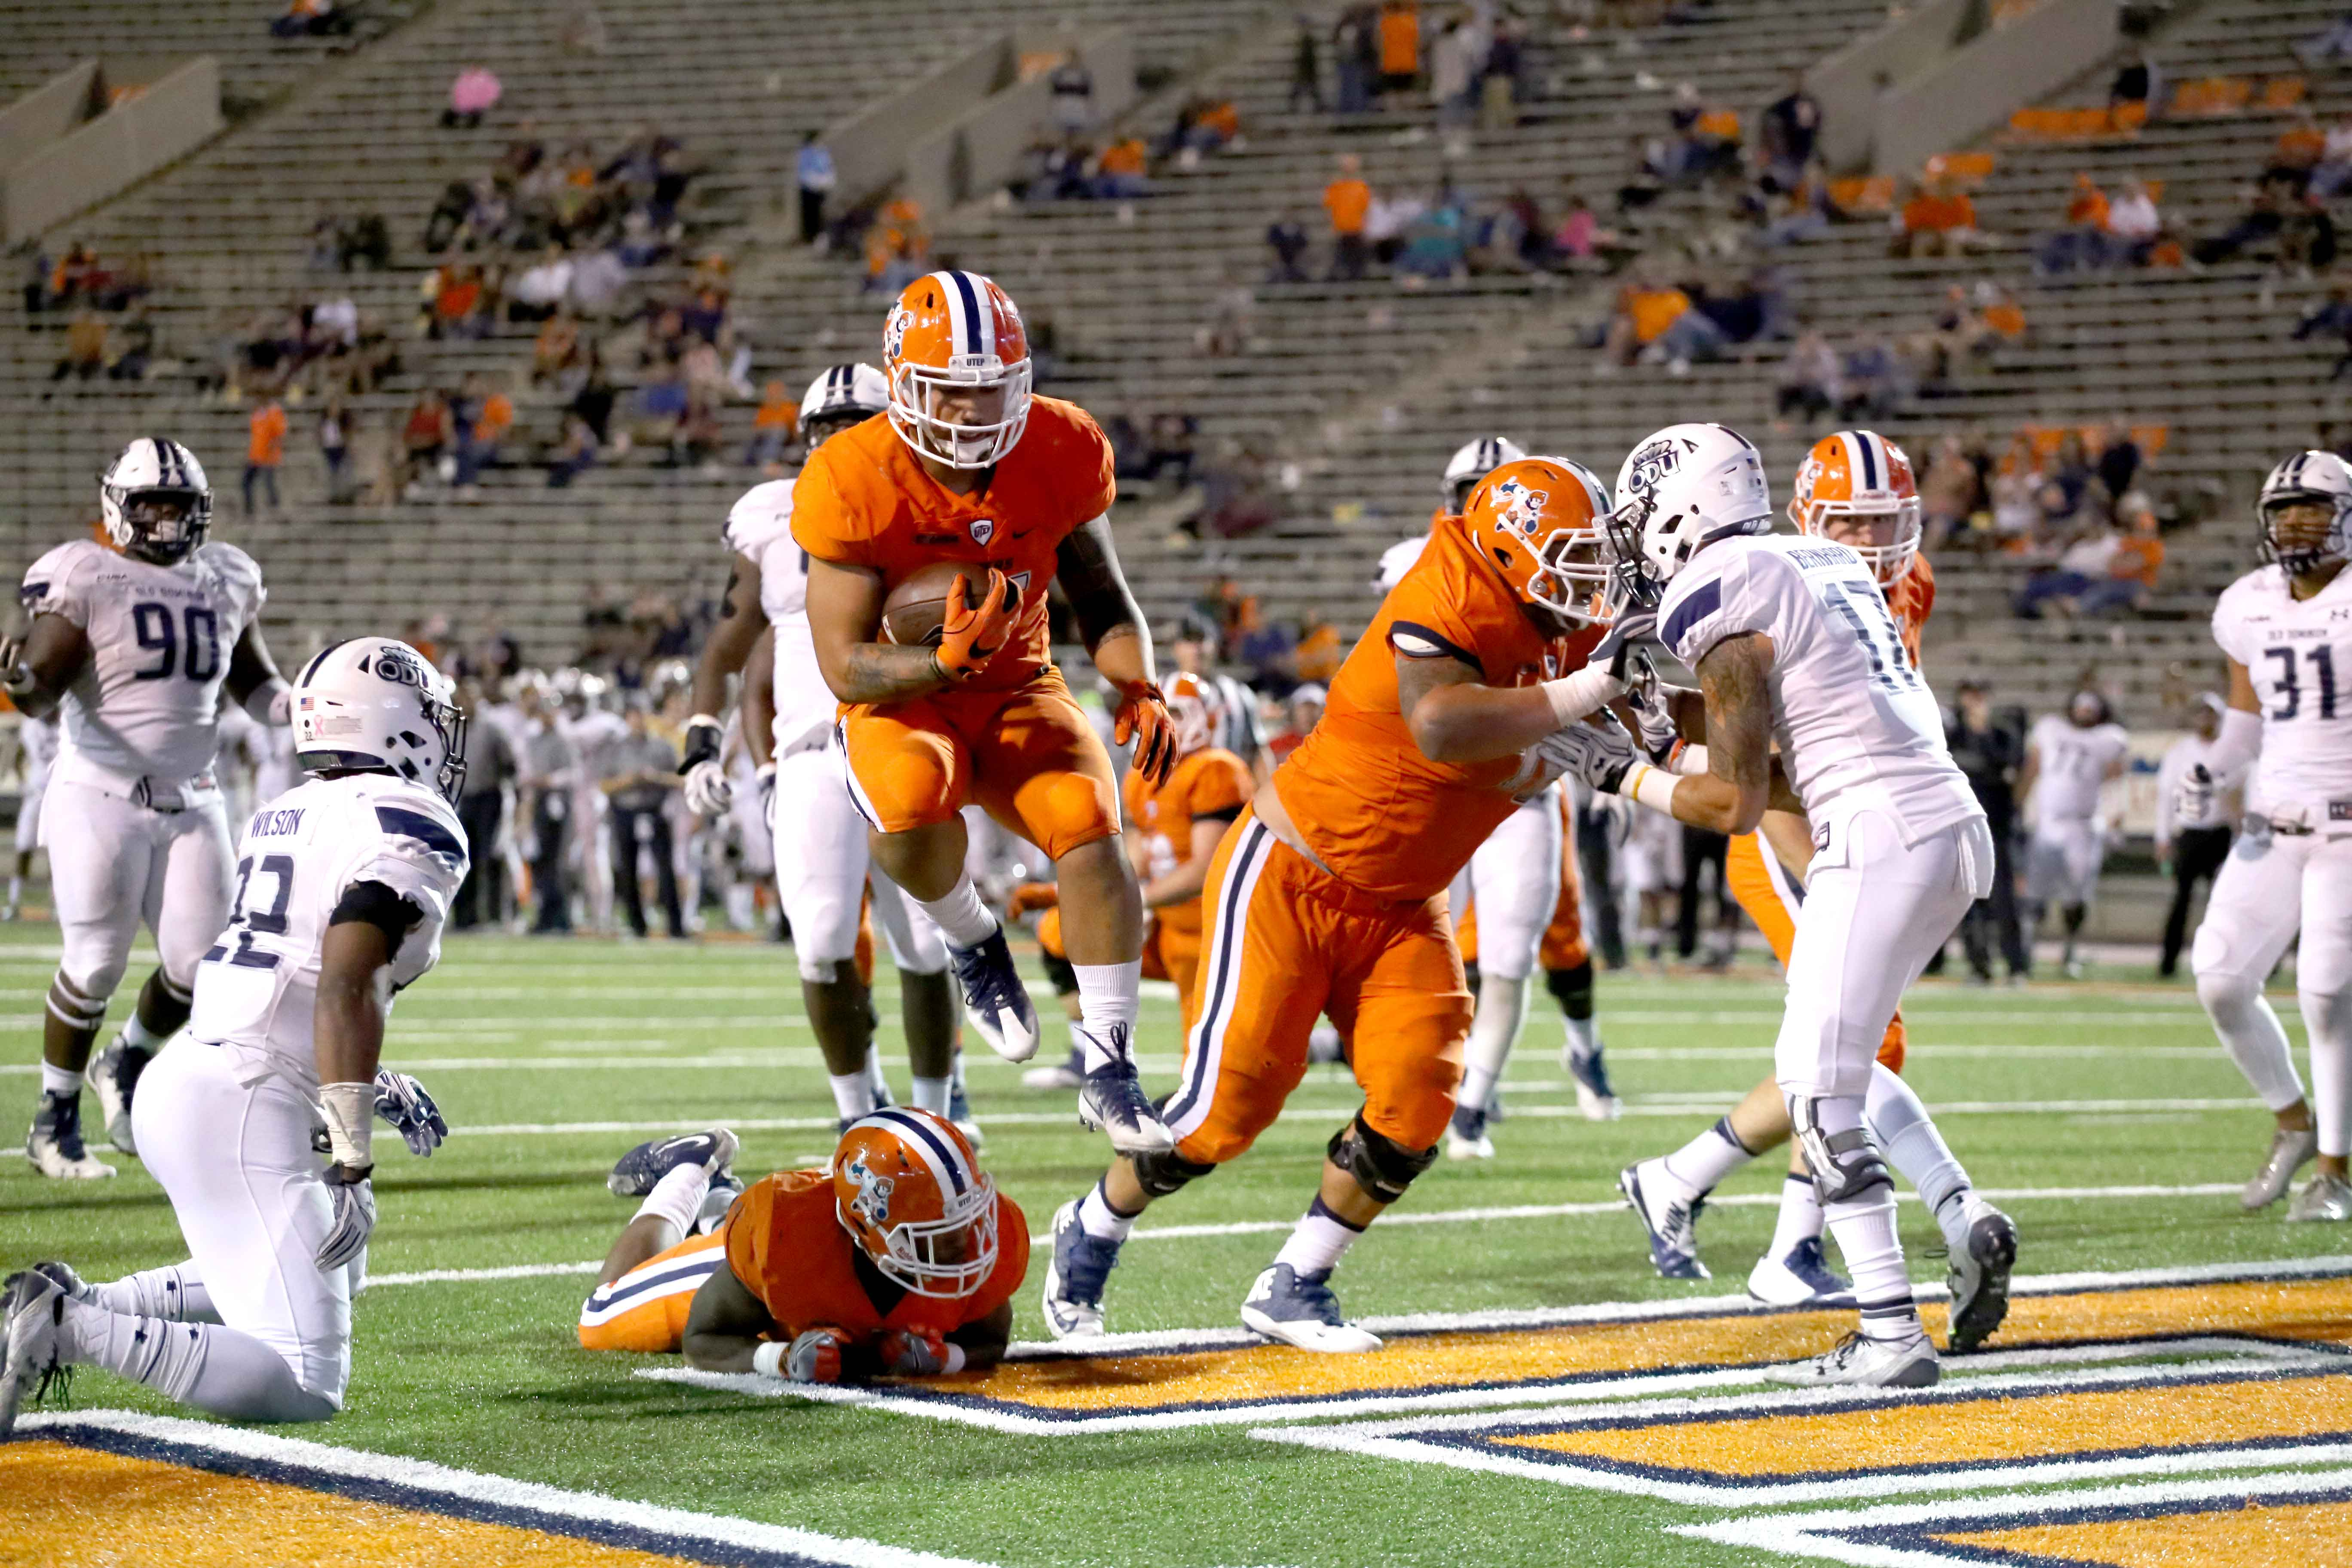 The Miners football team has to win their remaining four games for any hope of making a bowl game.